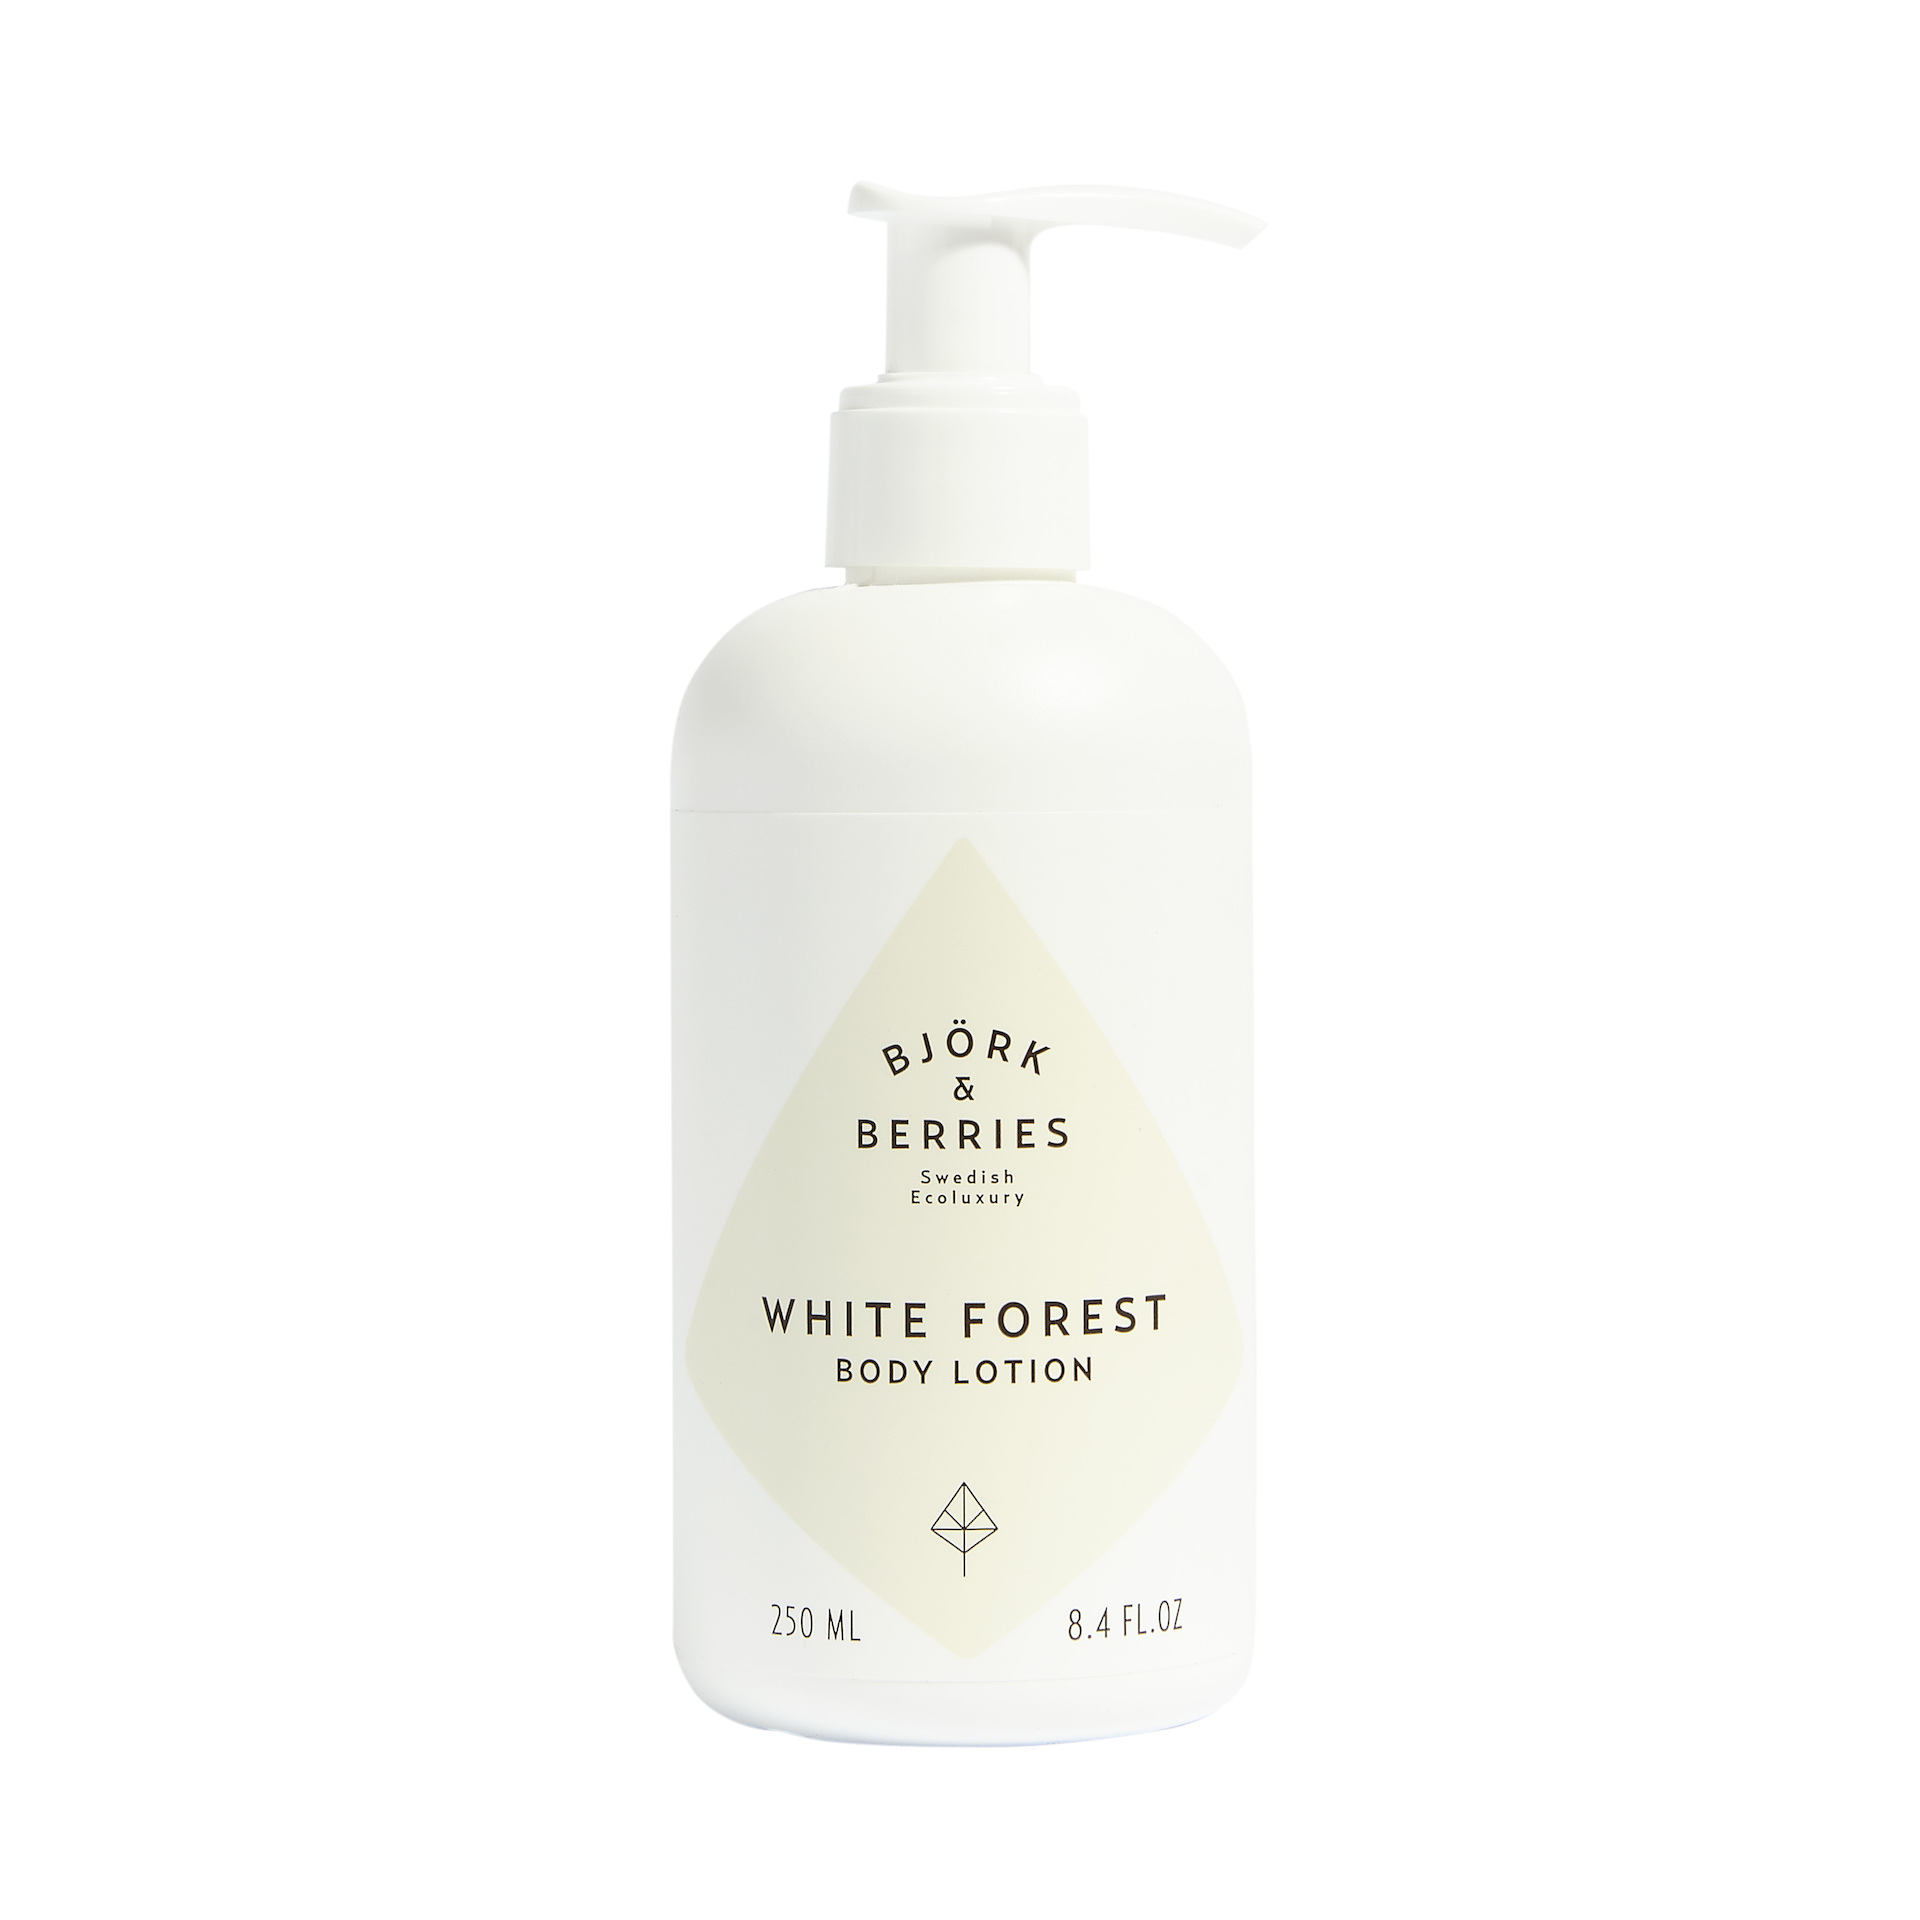 White Forest Body Lotion